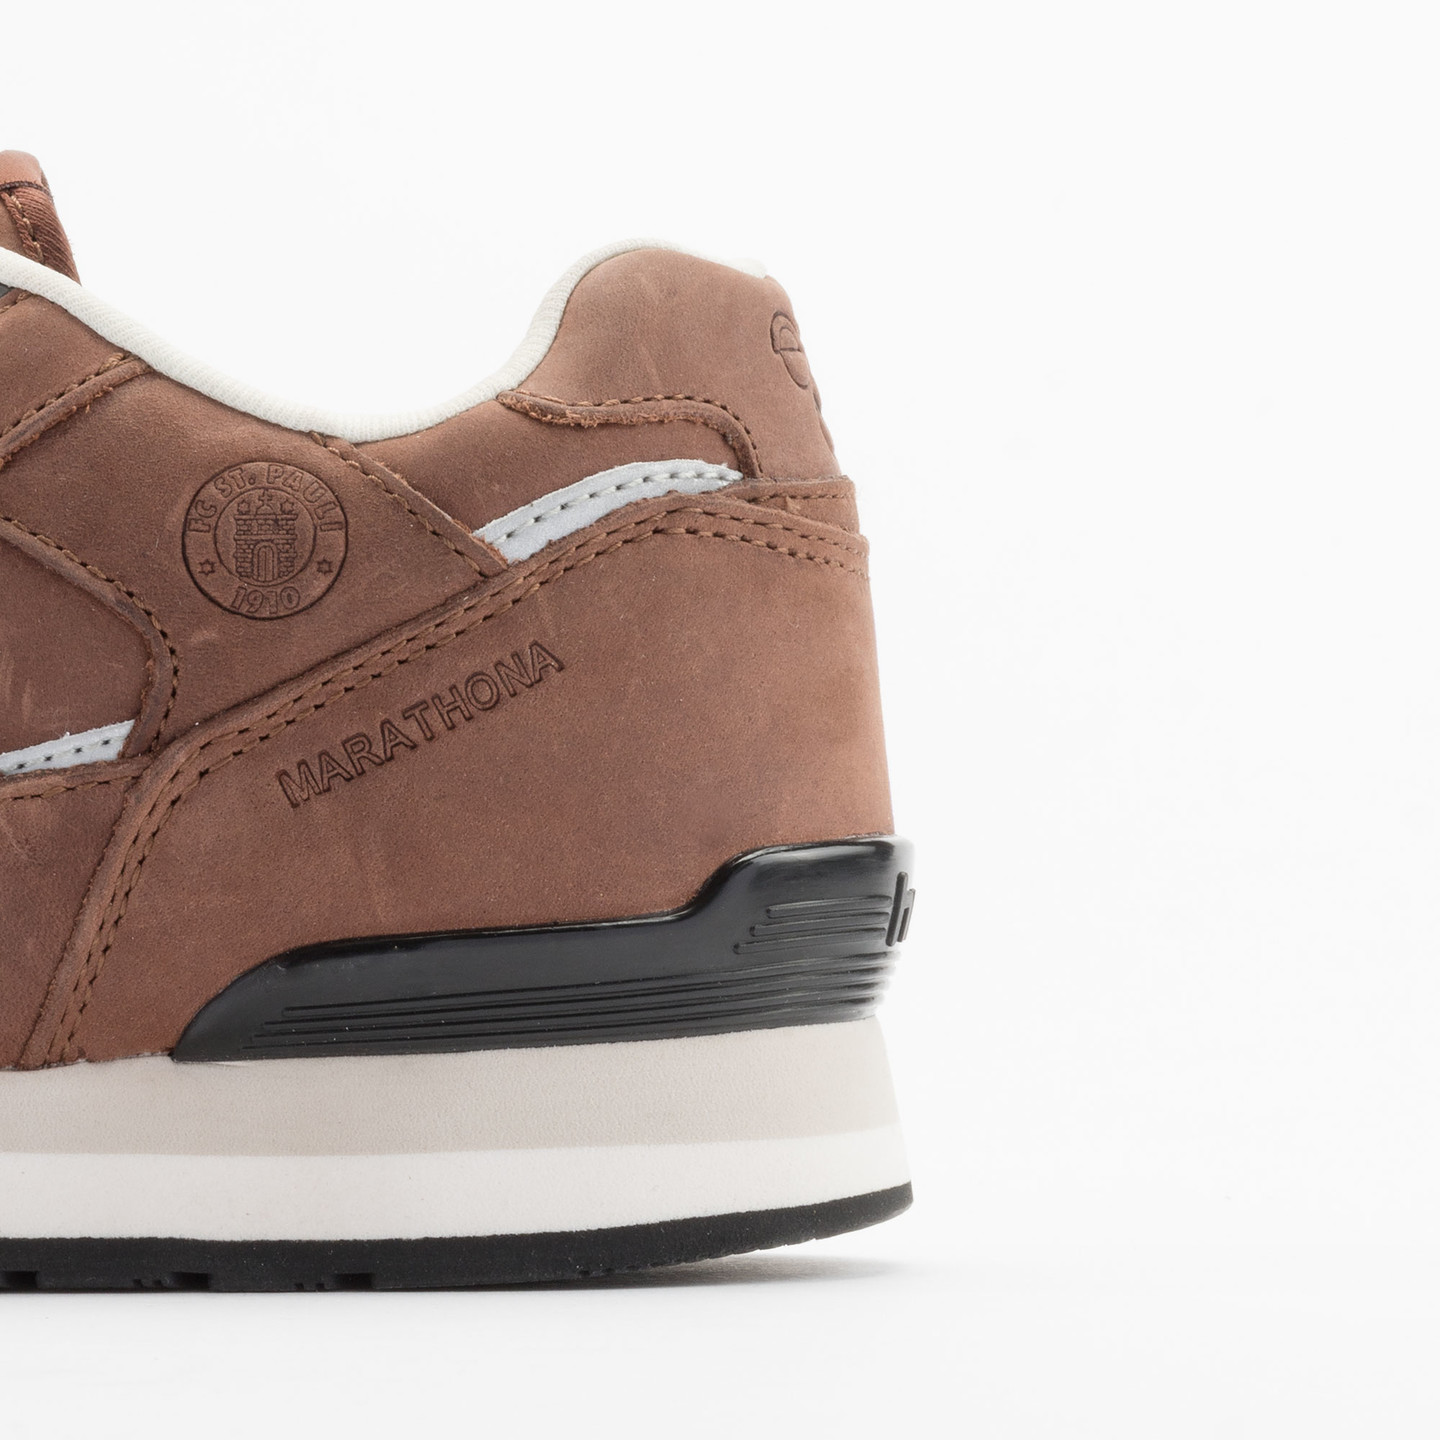 Hummel Marathona Low x St.Pauli Dark Brown 63-821-8225-43